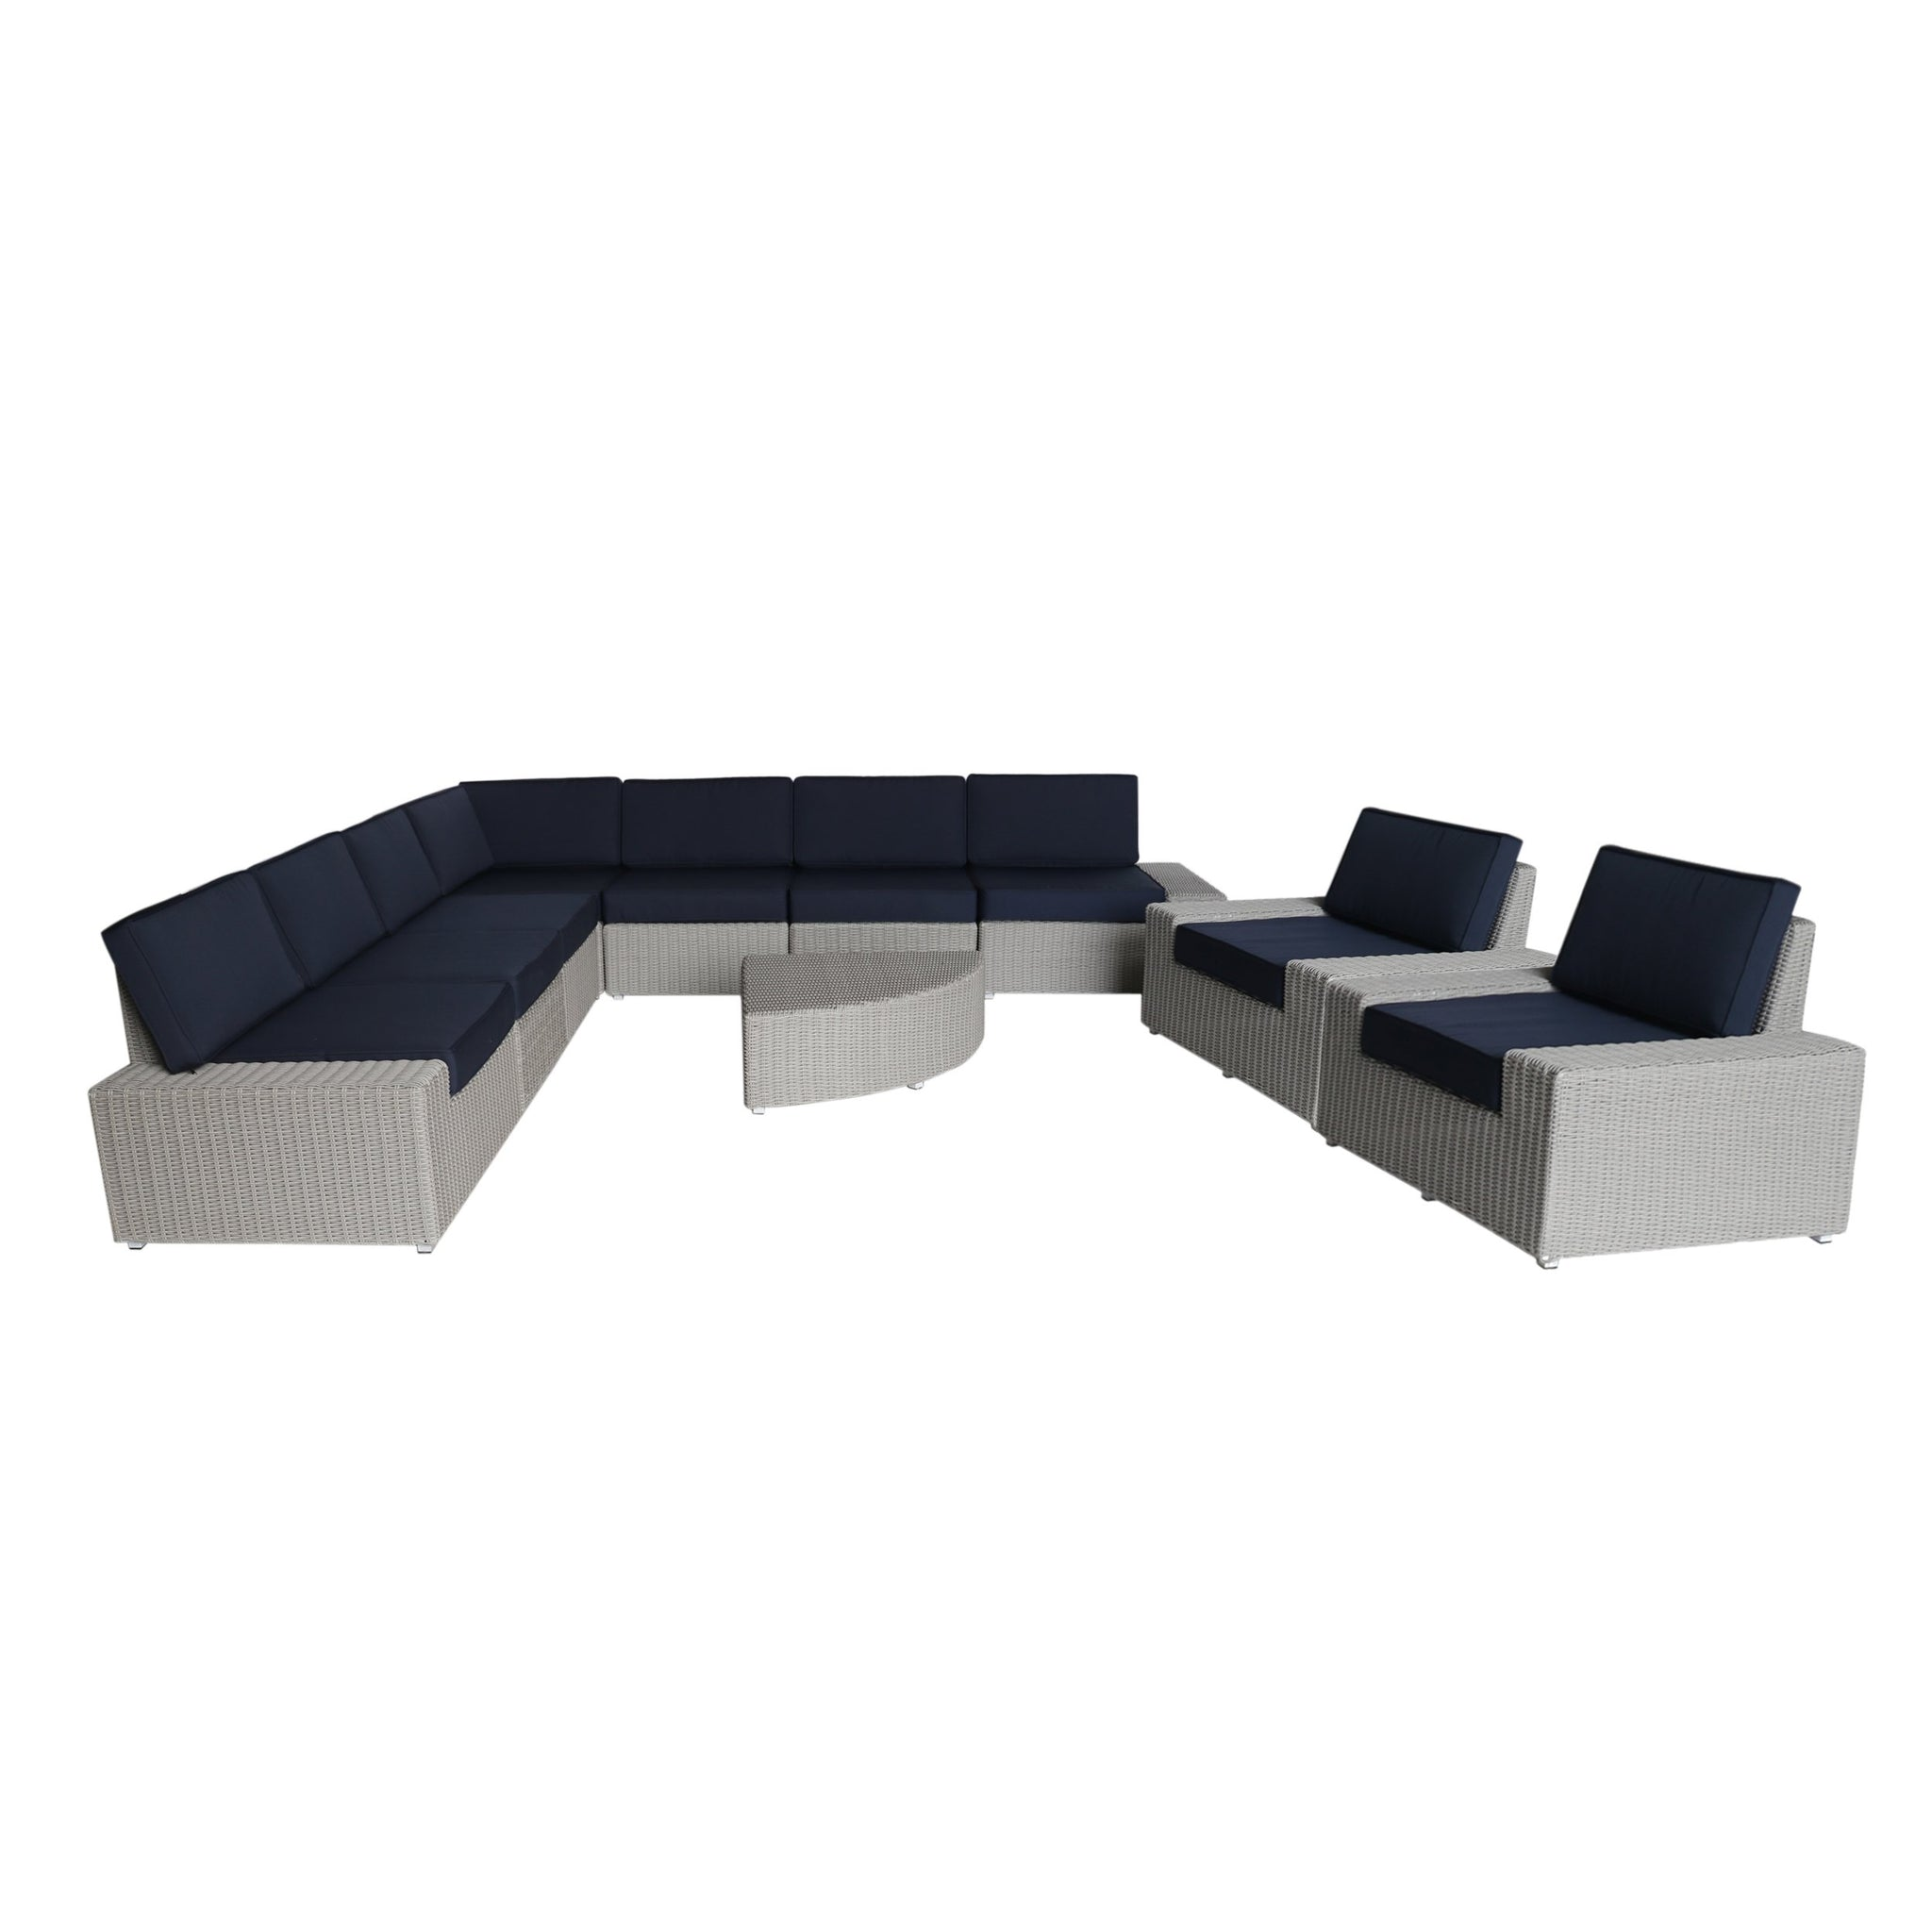 Sanger Outdoor 9 Seater Wicker Sofa Set